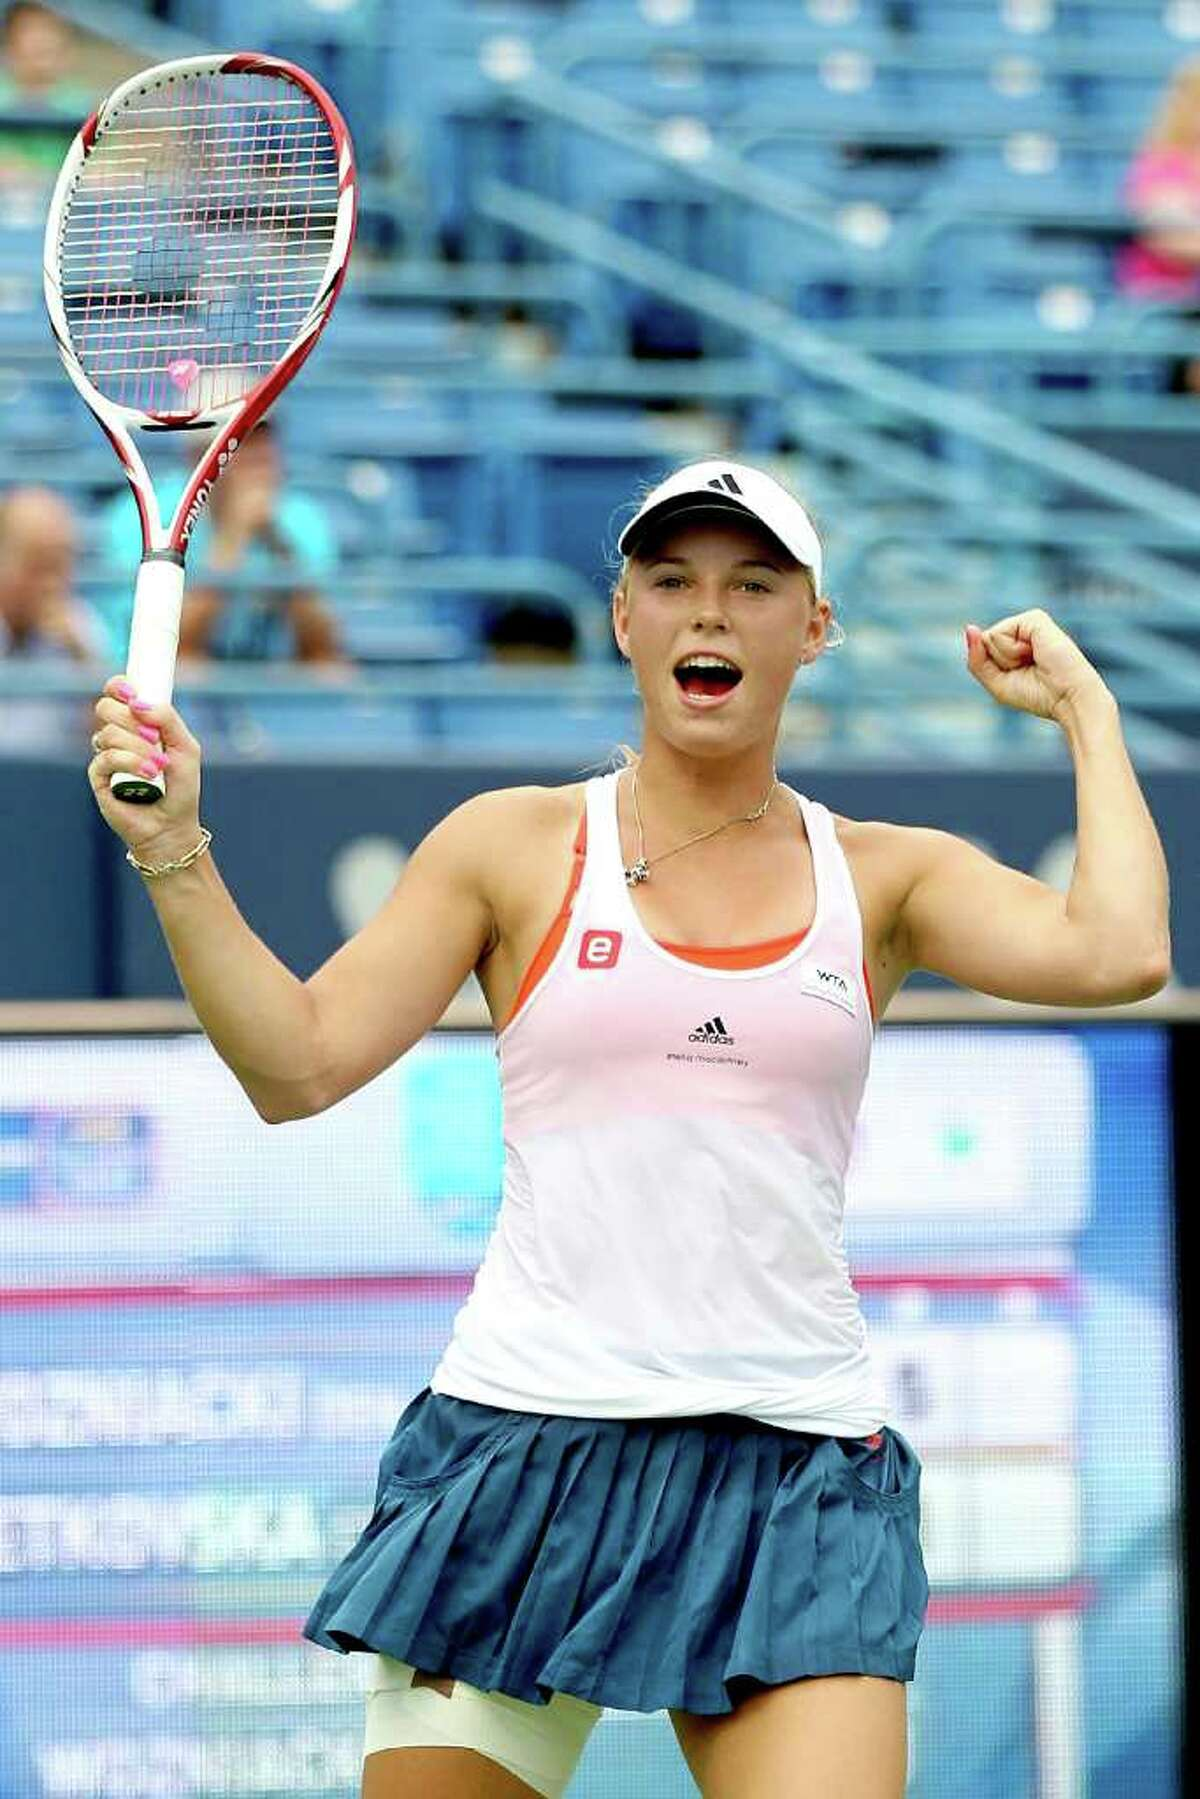 Caroline Wozniacki of Denmark celebrates match point against Petra Cetkovska of the Czech Republic during the final of the New Haven Open at Yale on Saturday. Wozniacki joined Venus Williams as the only players to win four straight New Haven events.